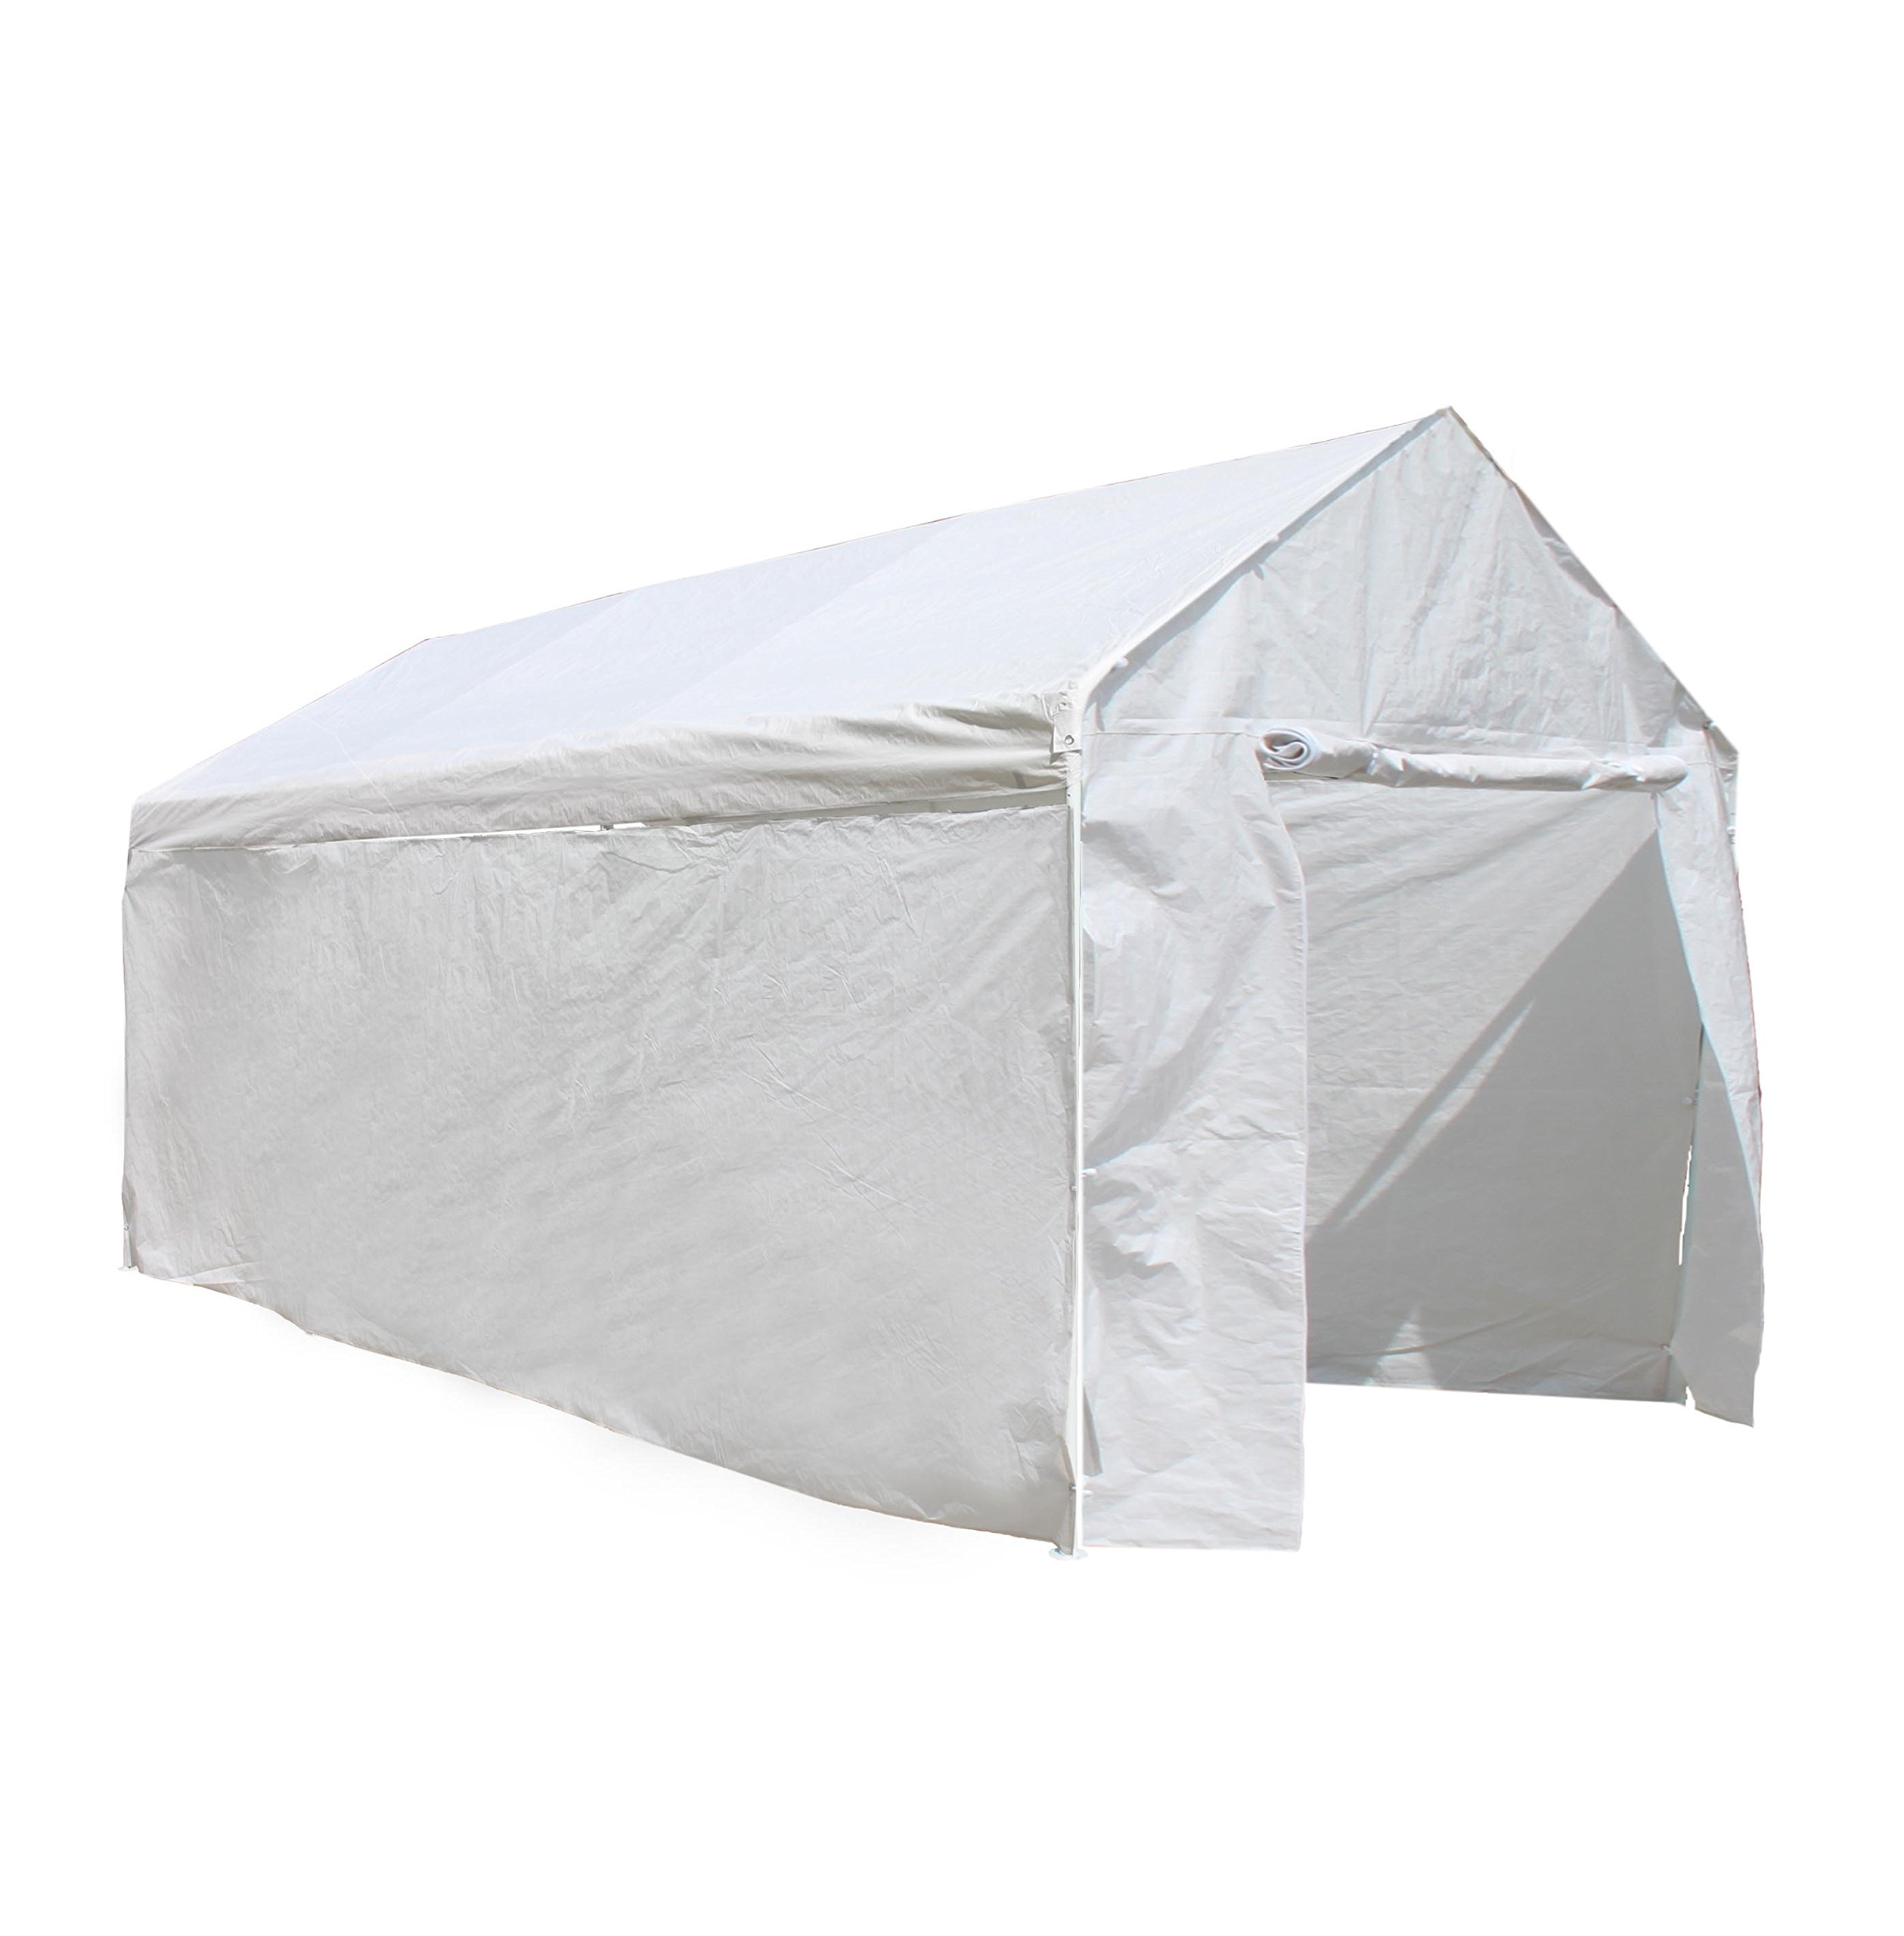 ALEKO CP1020NS 10 X 20 Heavy Duty Steel Frame Carport Kit, Party Tent with Polyethylene Removable Walls in White